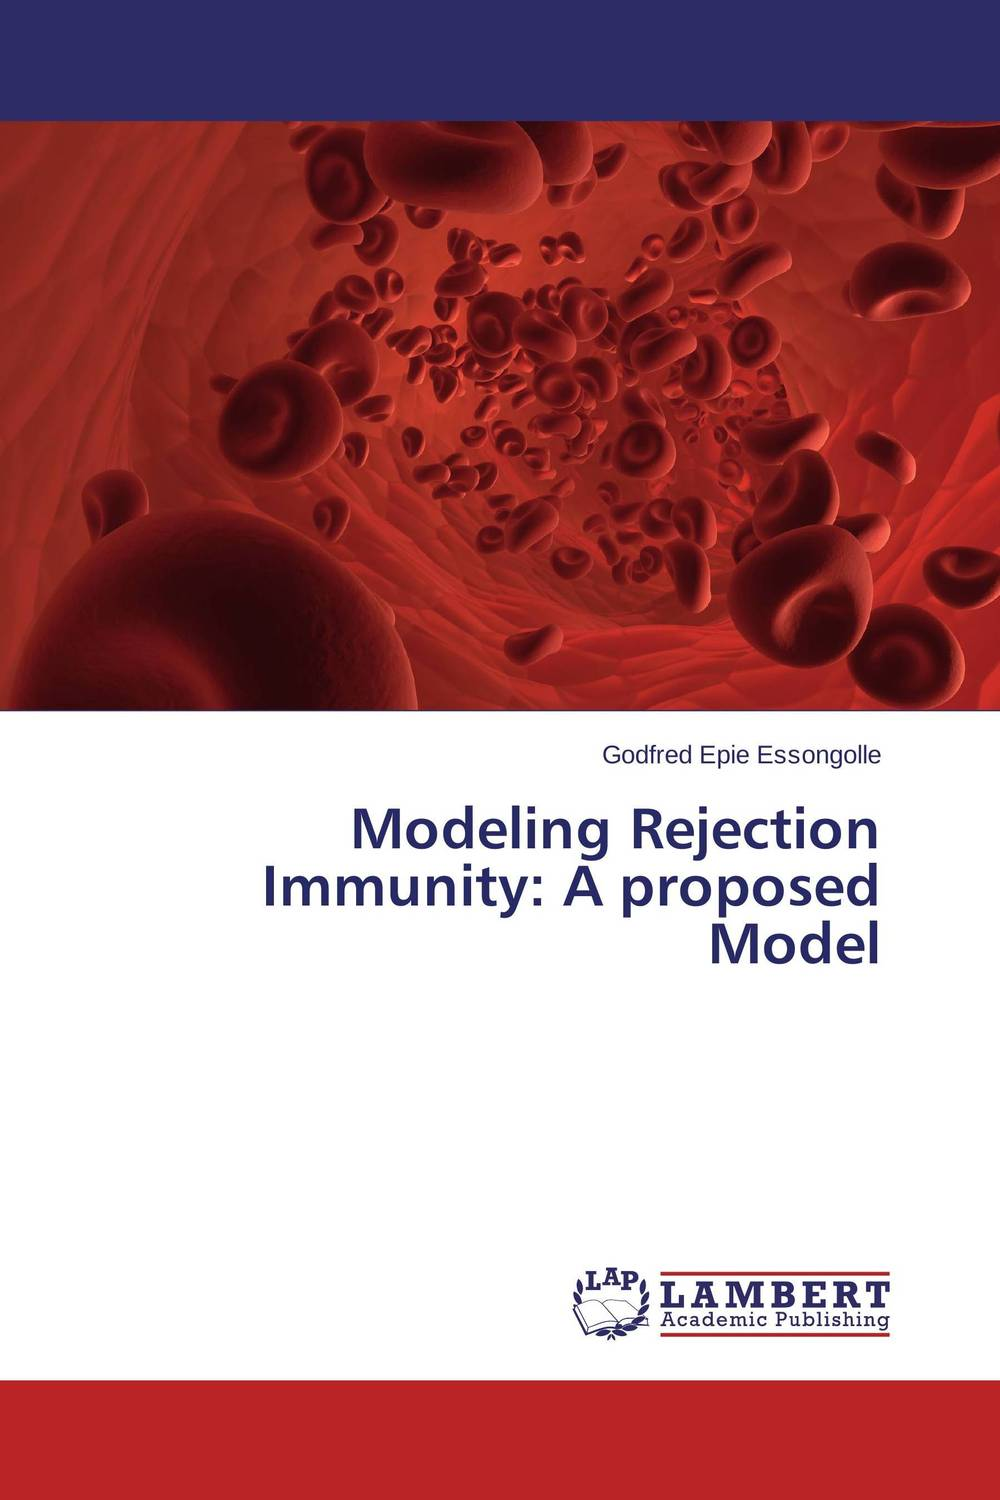 Modeling Rejection Immunity: A proposed Model